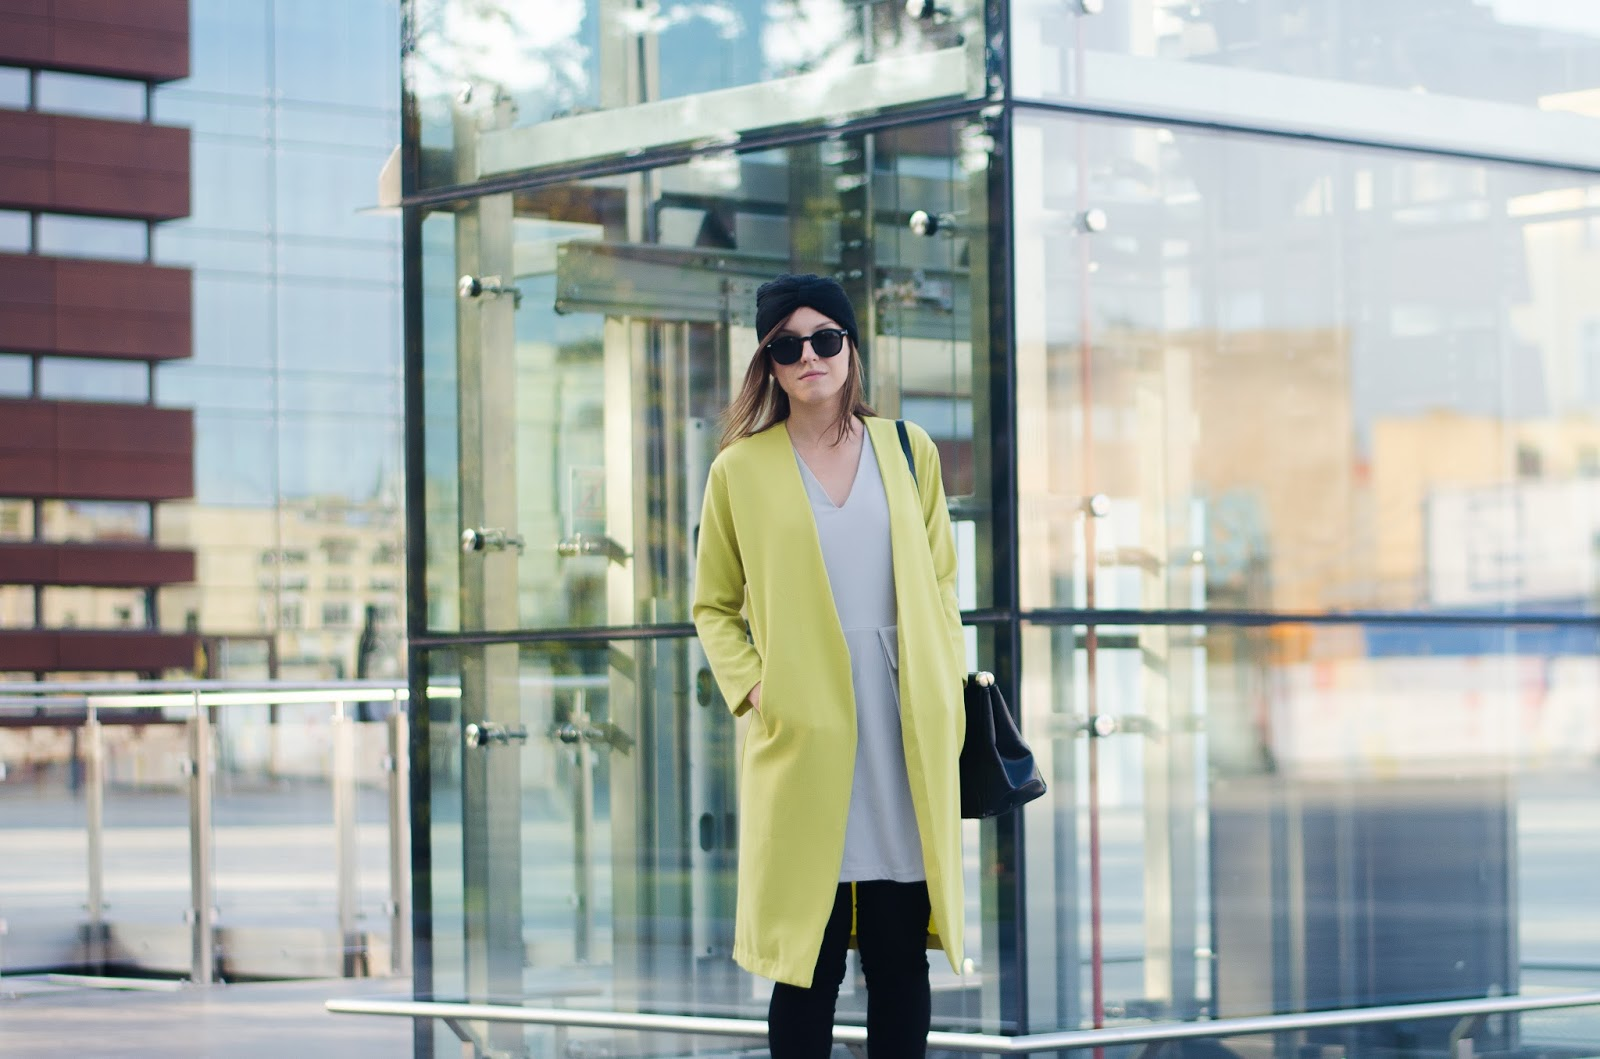 Fashion blogger street syle outfit yellow coat, simple v-neck dress, turban hat and leather slip on sneakers